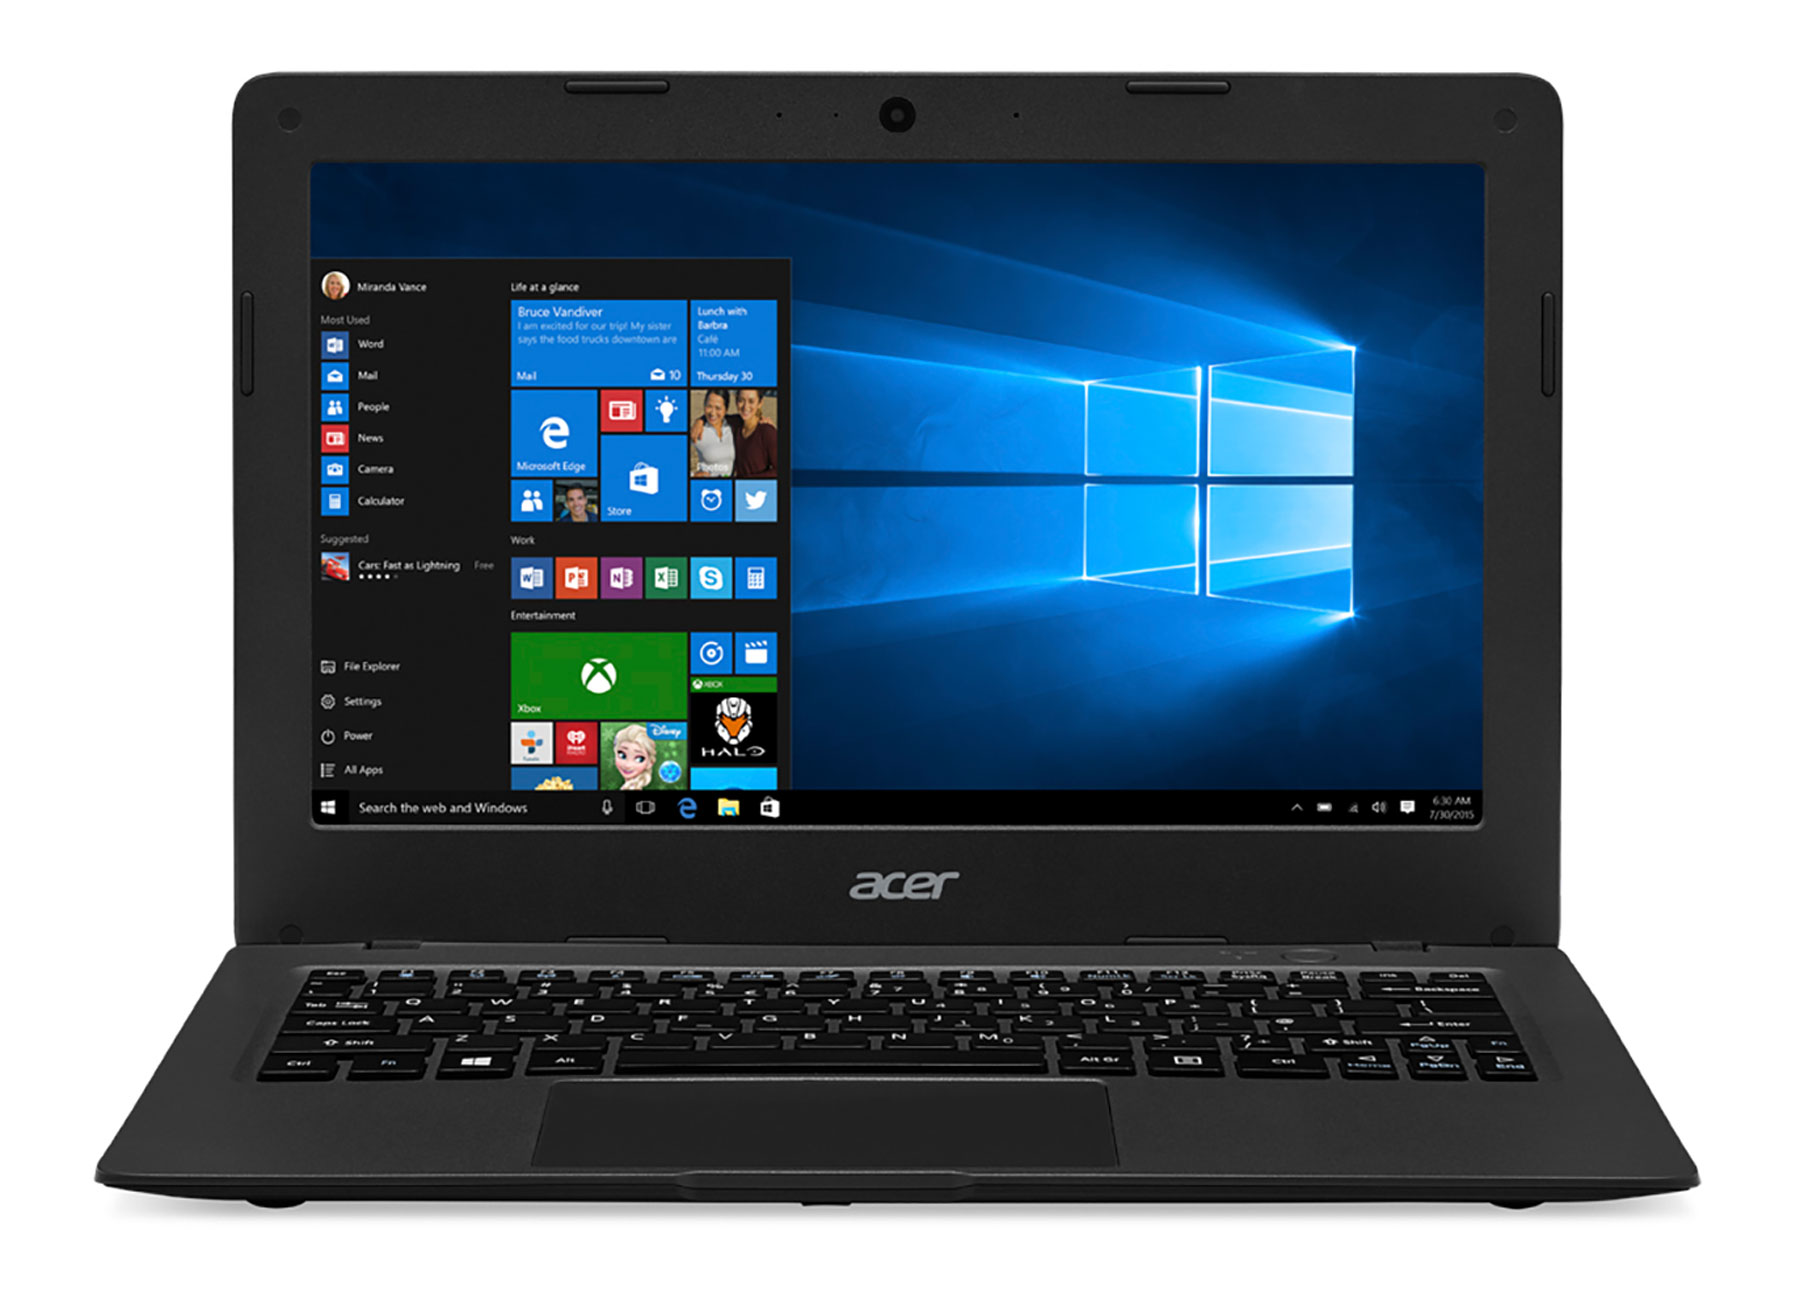 Acer AO1-431 Intel Celeron 2GB RAM 32GB SSD 14 Laptop